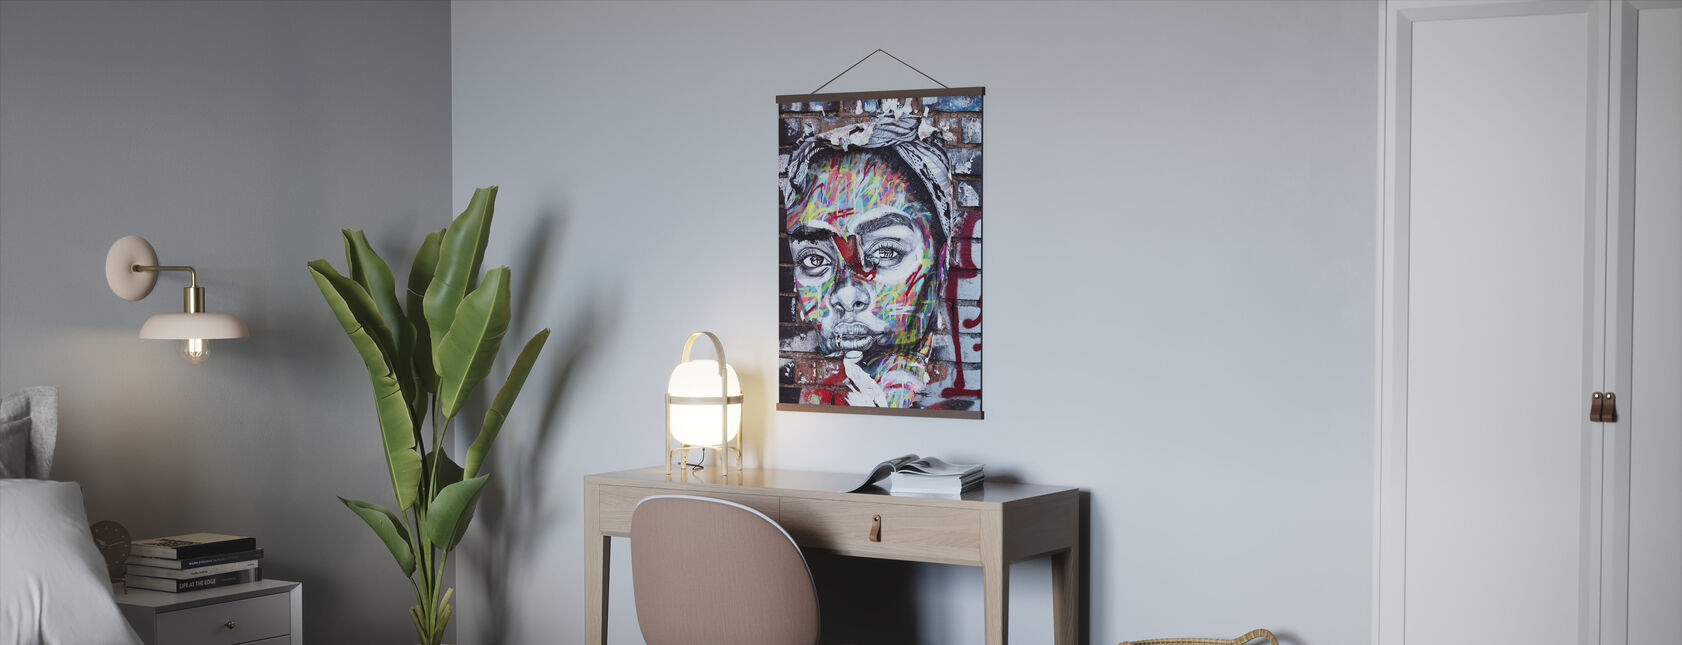 Street Art Portrait - Poster - Office